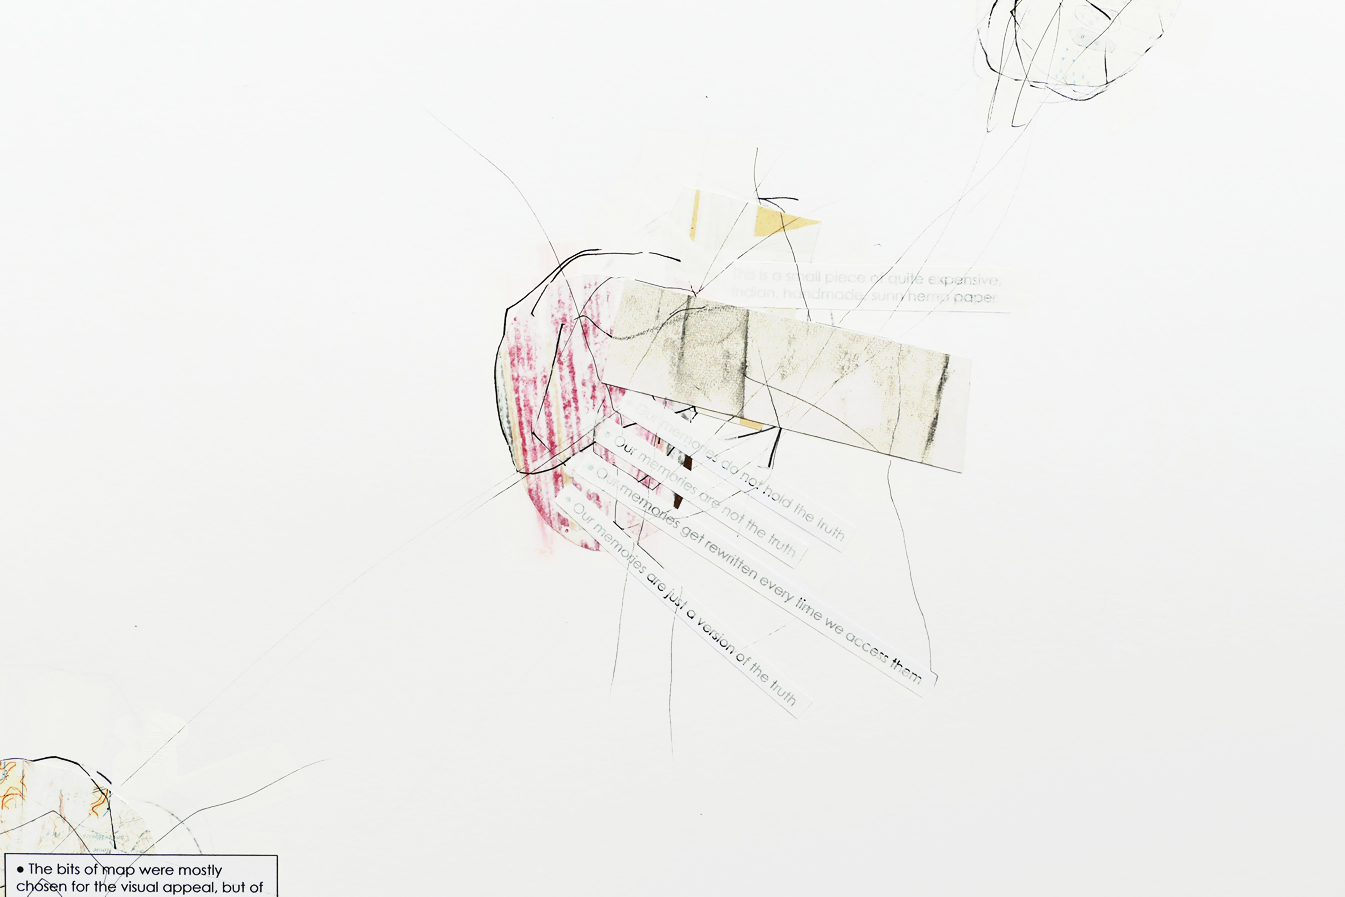 Detail of abstract minimalist collage & drawing by David Smith